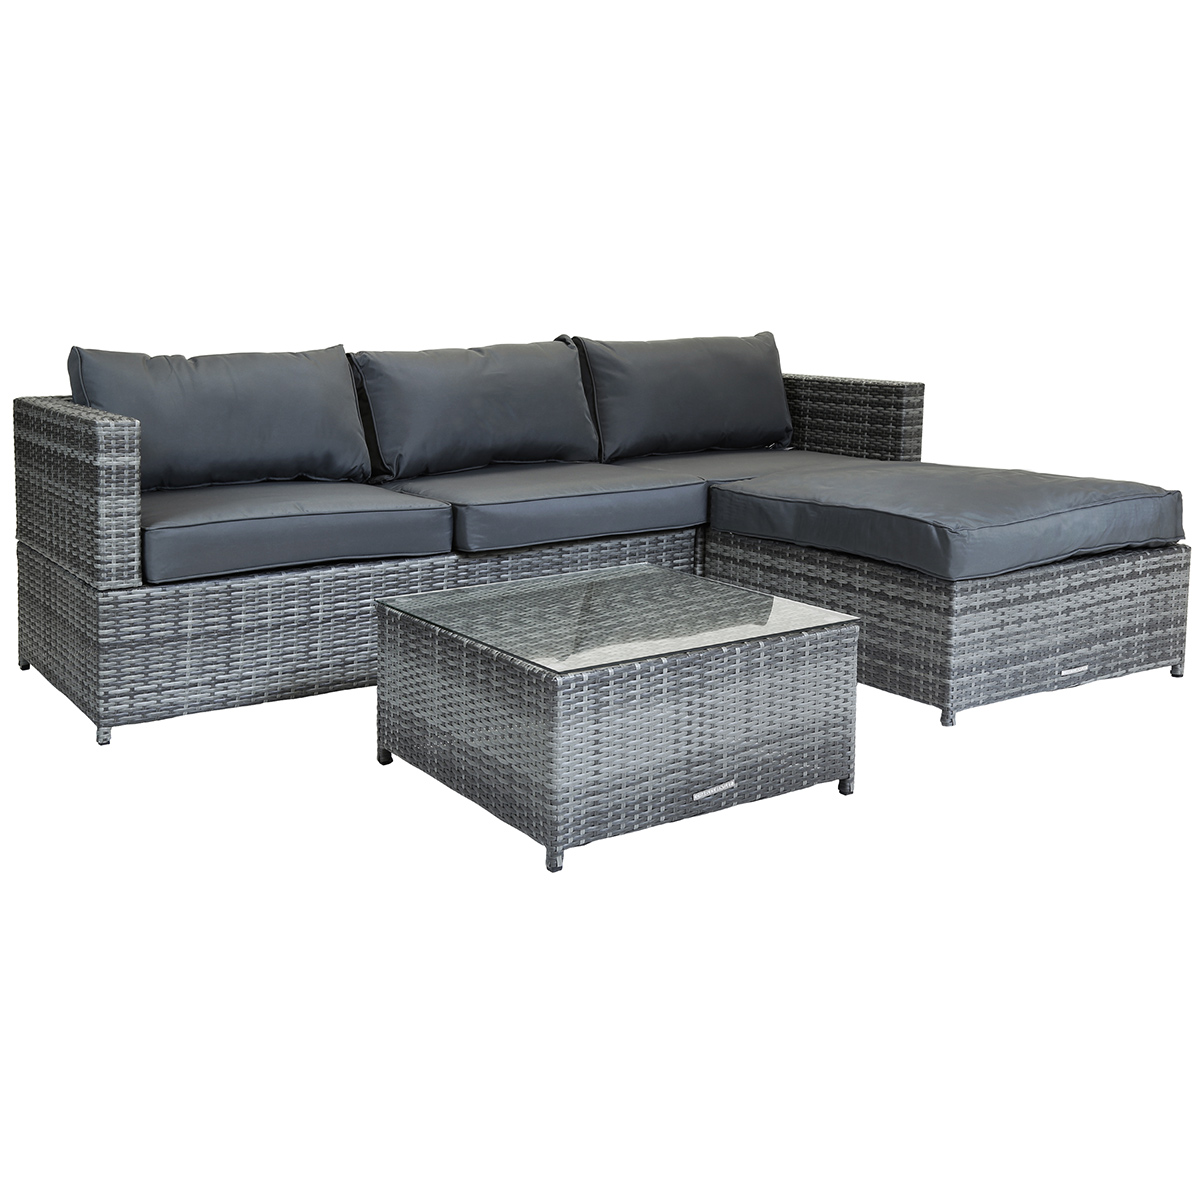 charles bentley l shaped 3 seater rattan furniture lounge set brown grey ebay. Black Bedroom Furniture Sets. Home Design Ideas